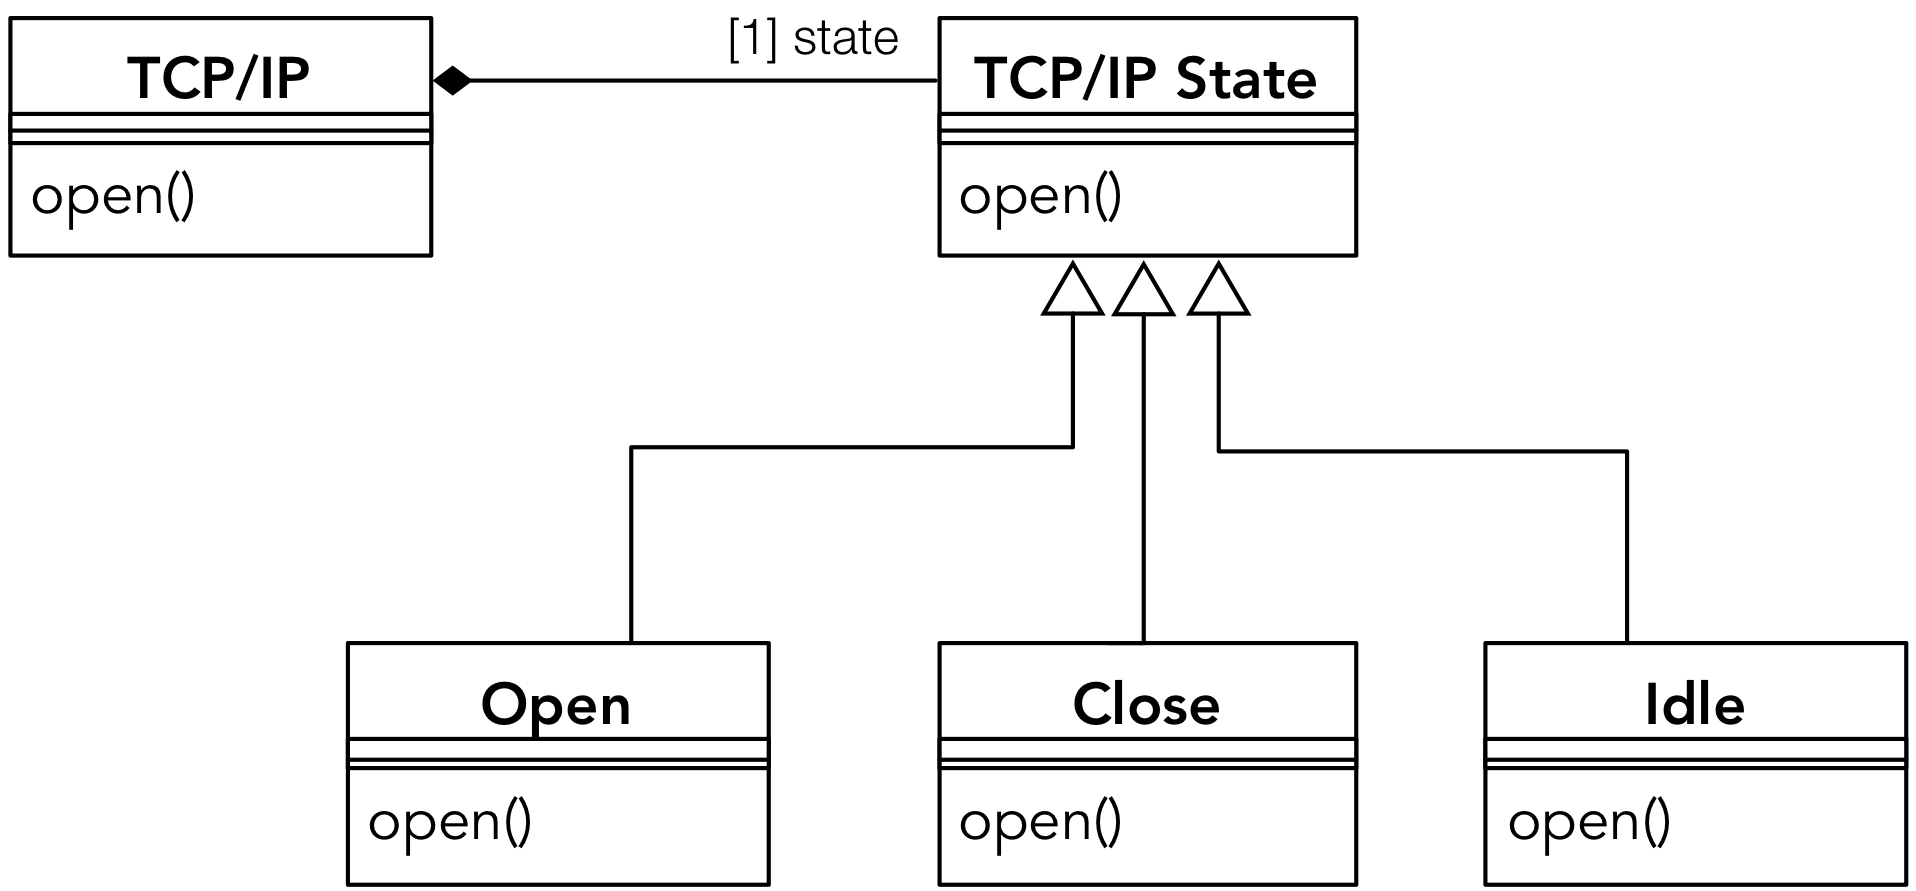 resources/png/tcp-ip-state.png